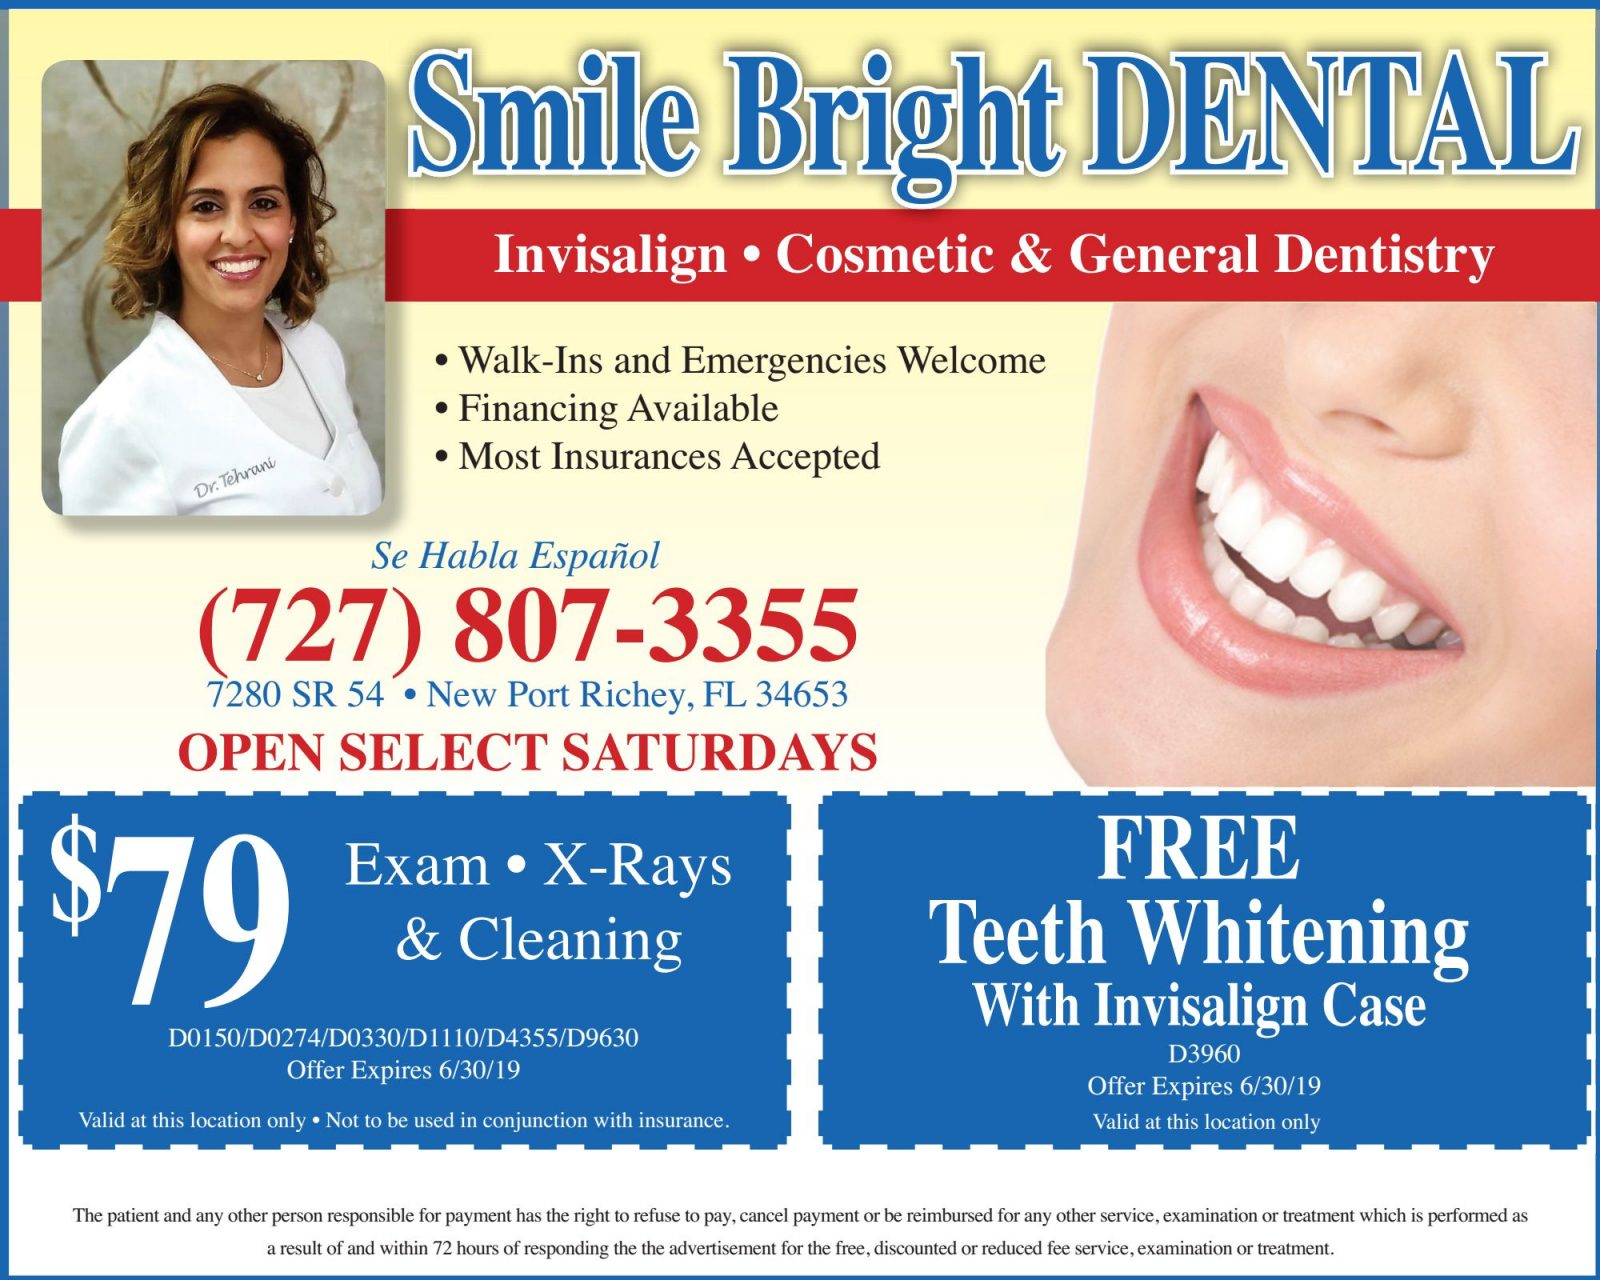 Smile Bright Dental - Boomerz of America June 2019